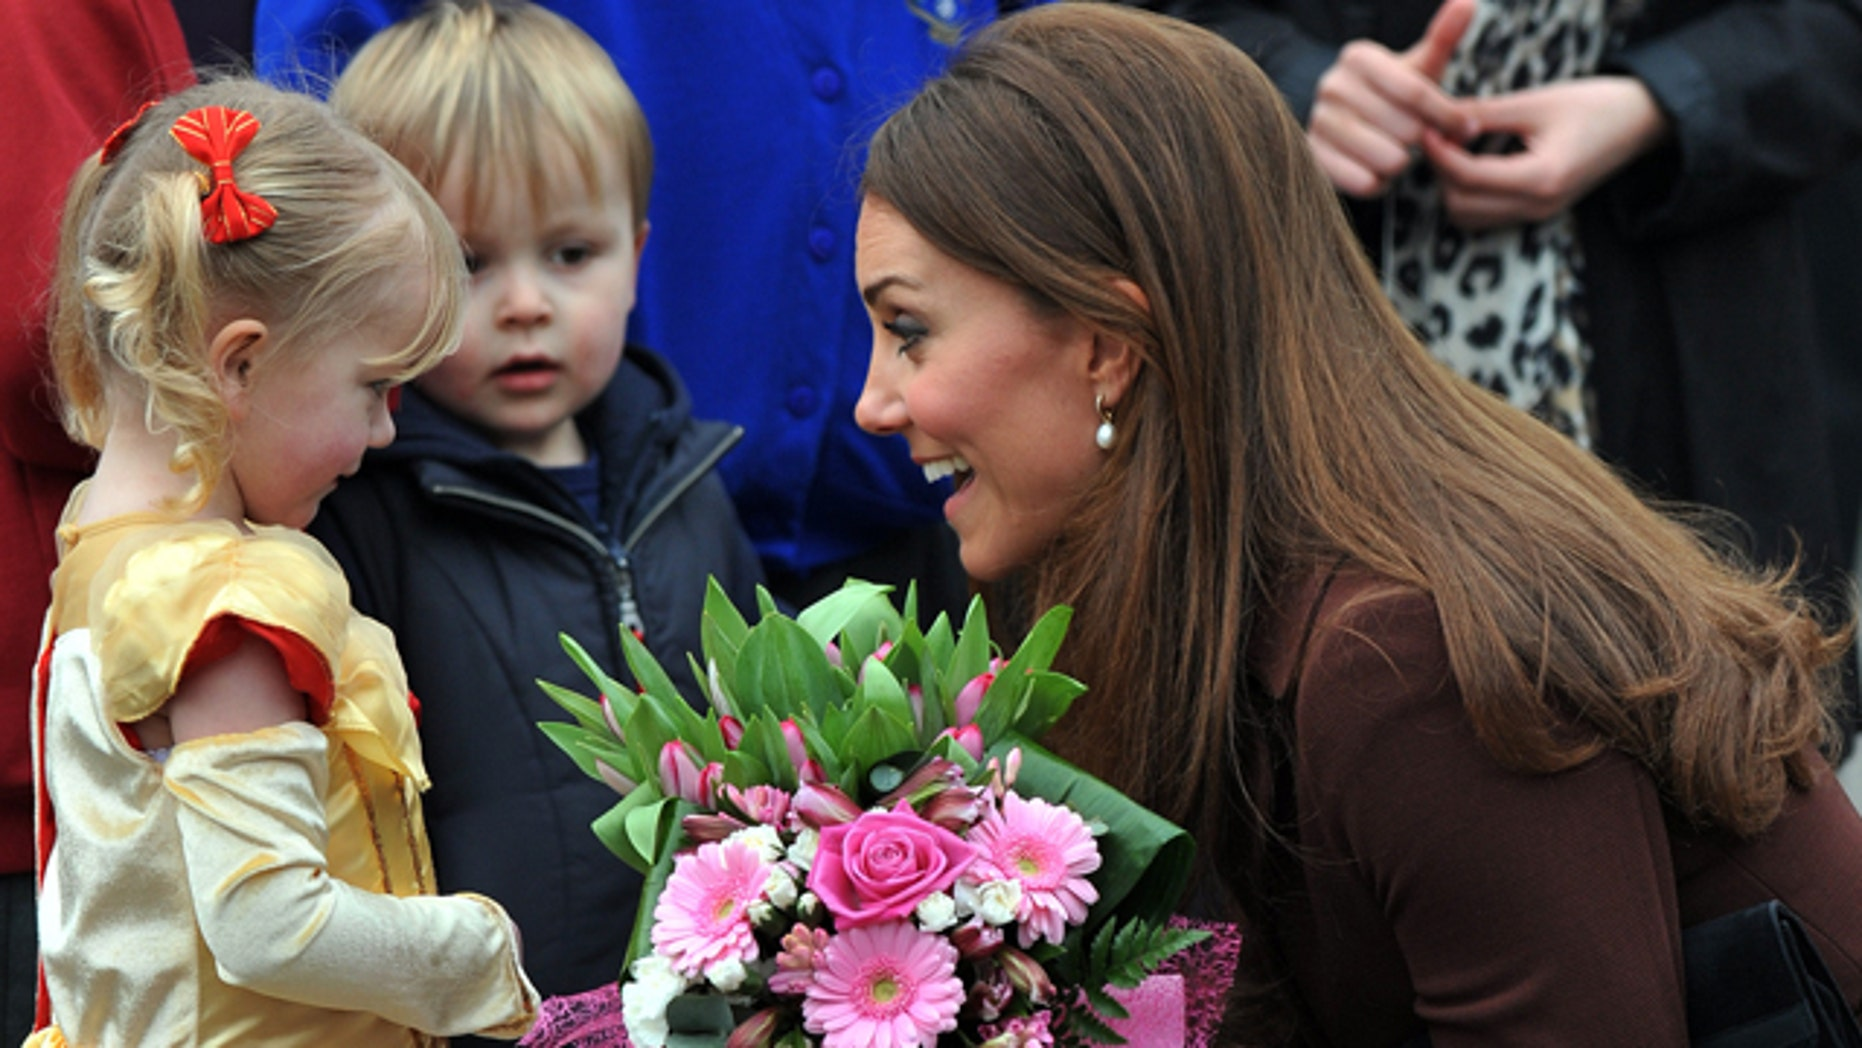 Mar. 5, 2013: Britain's Catherine, Duchess of Cambridge receives flowers from 3-year old Isobelle Laursen, left, during her visit to Humberside Fire and Rescue Station.